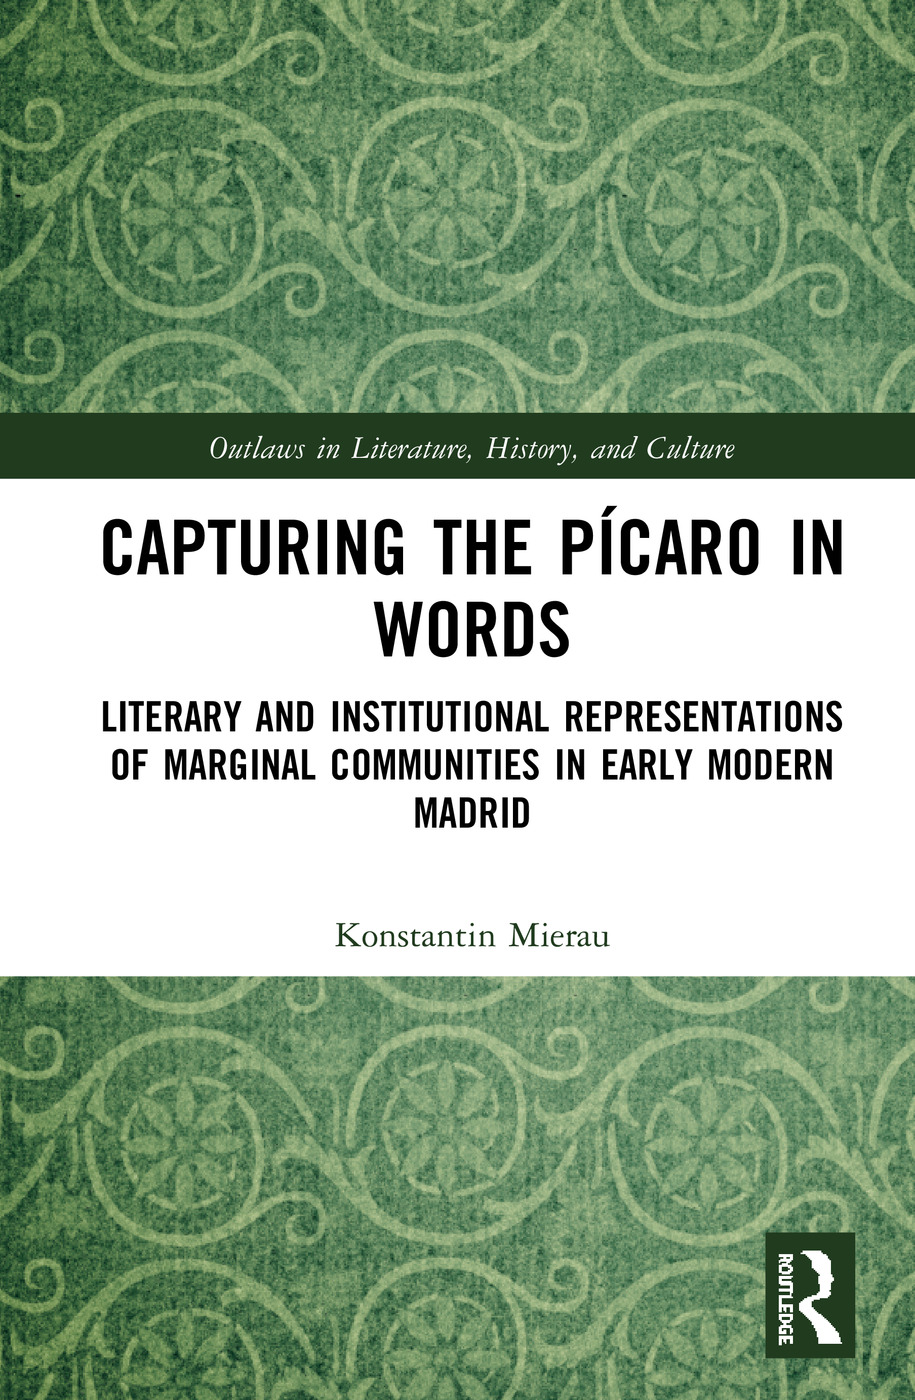 Capturing the Pícaro in Words: Literary and Institutional Representations of Marginal Communities in Early Modern Madrid, 1st Edition (Hardback) book cover